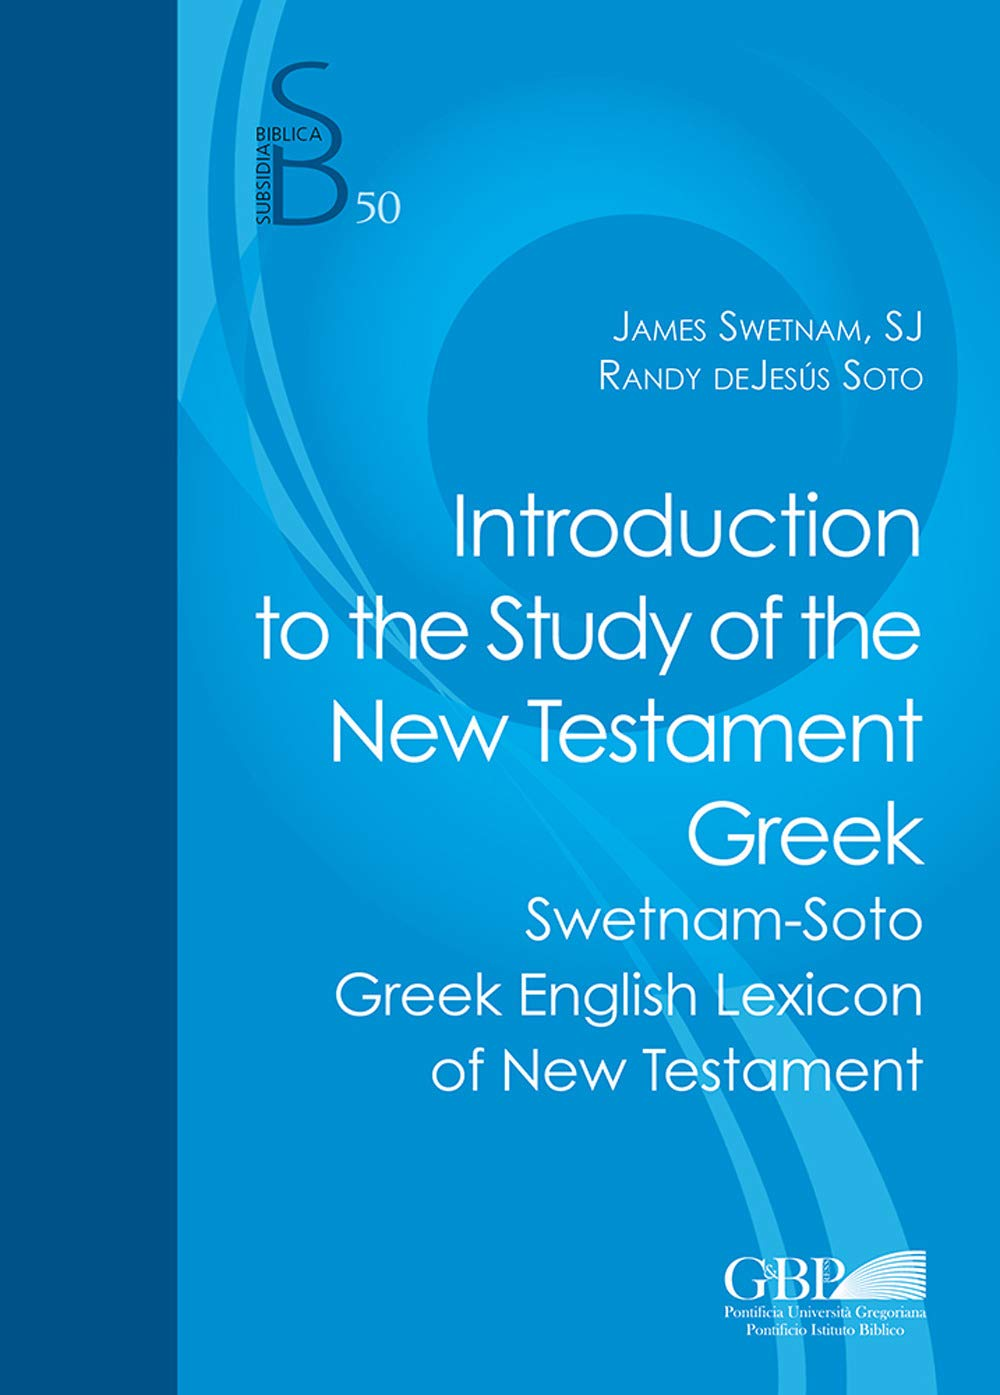 SWETNAM, J. ; DEJESÚS SOTO, R. Introduction to the Study of the New Testament Greek - Greek English Lexicon of New Testament. Rome: Gregorian & Biblical Press, 2019, 224 p.